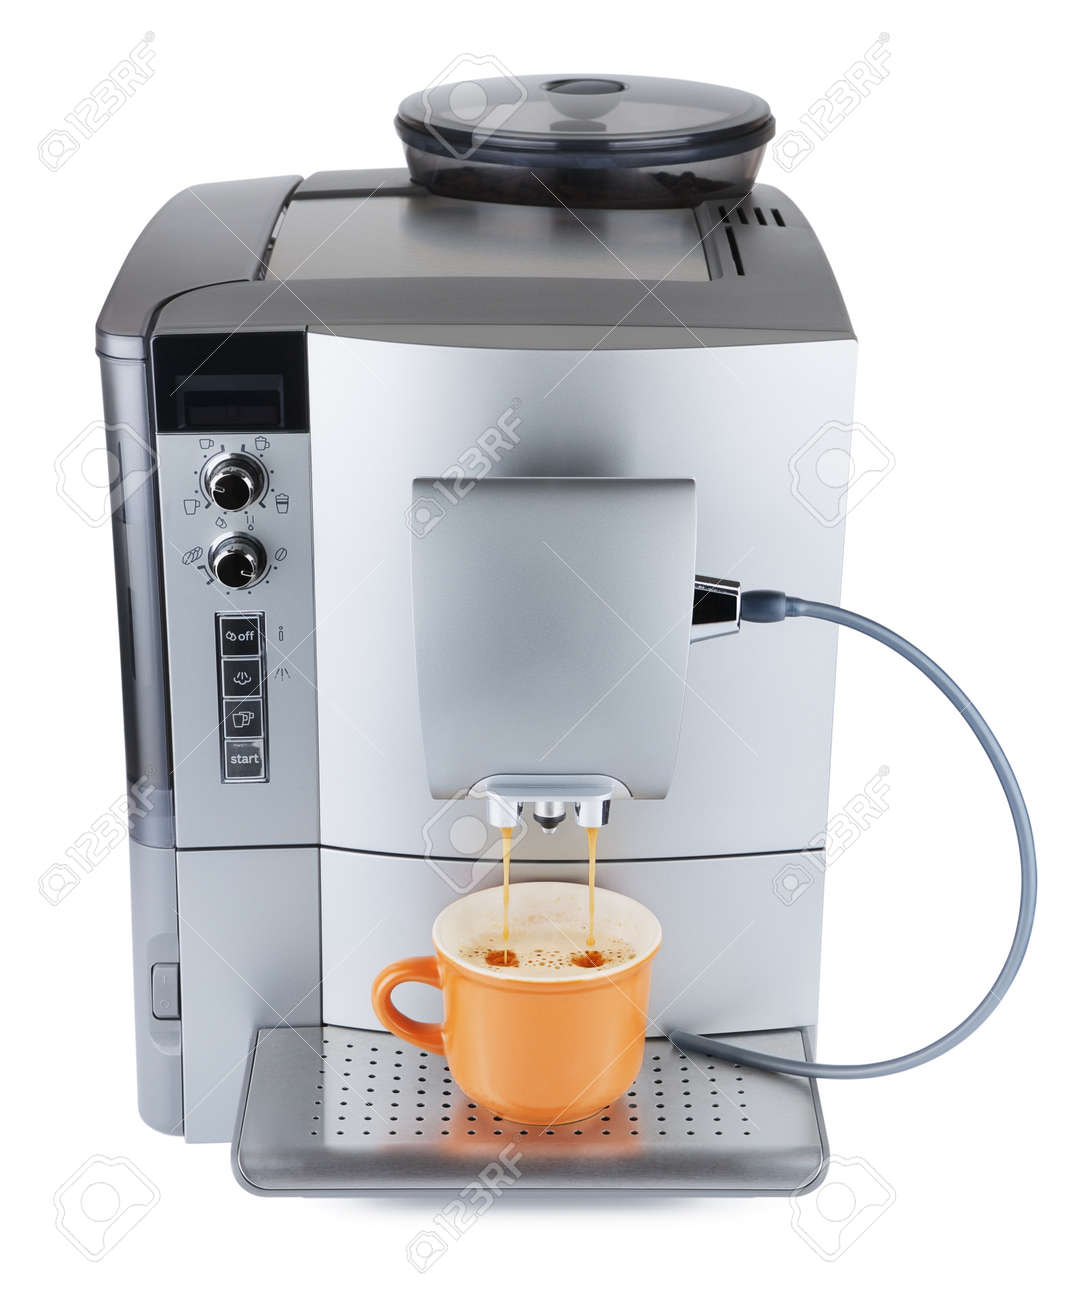 Cappuccino Machine Cappuccino Machine With Cup Of Coffee Isolated On White